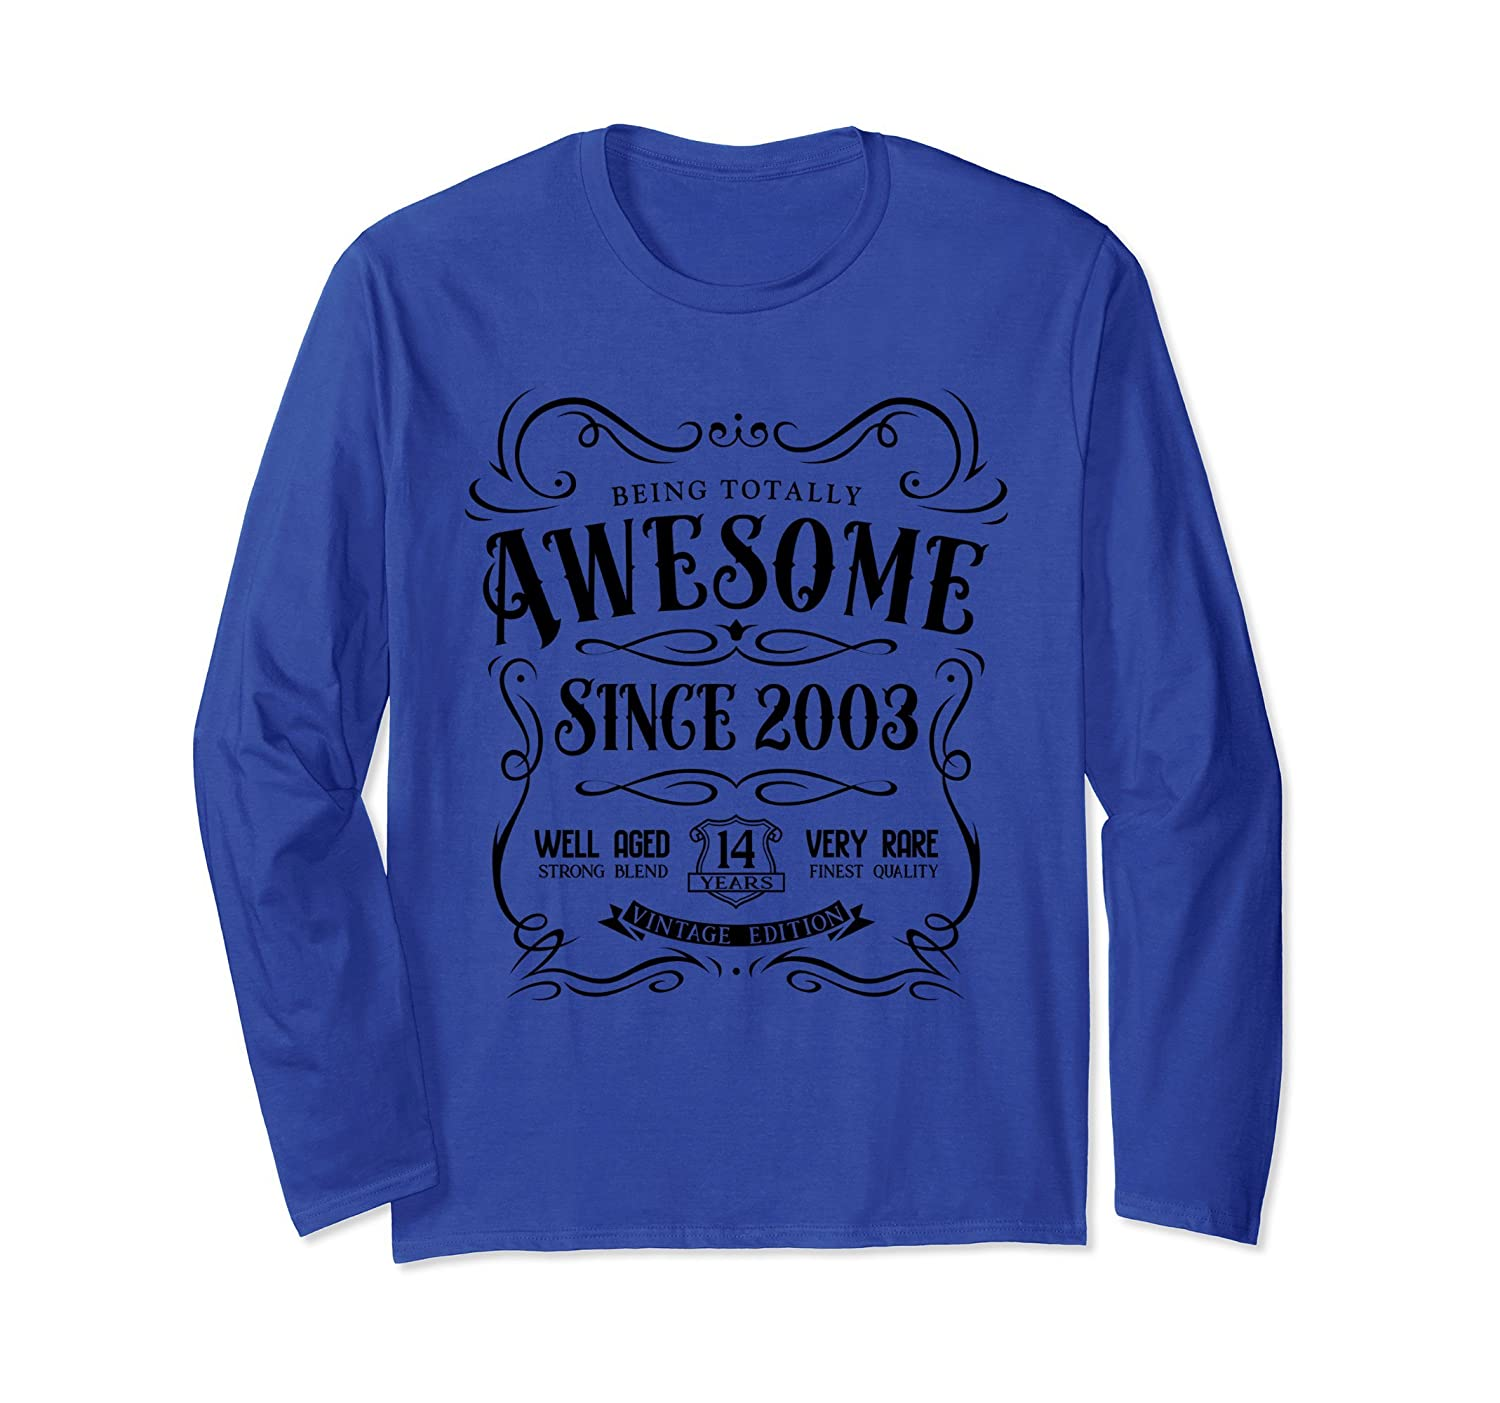 14th Birthday Gift T-Shirt Awesome Since 2003 Long Sleeve-Rose